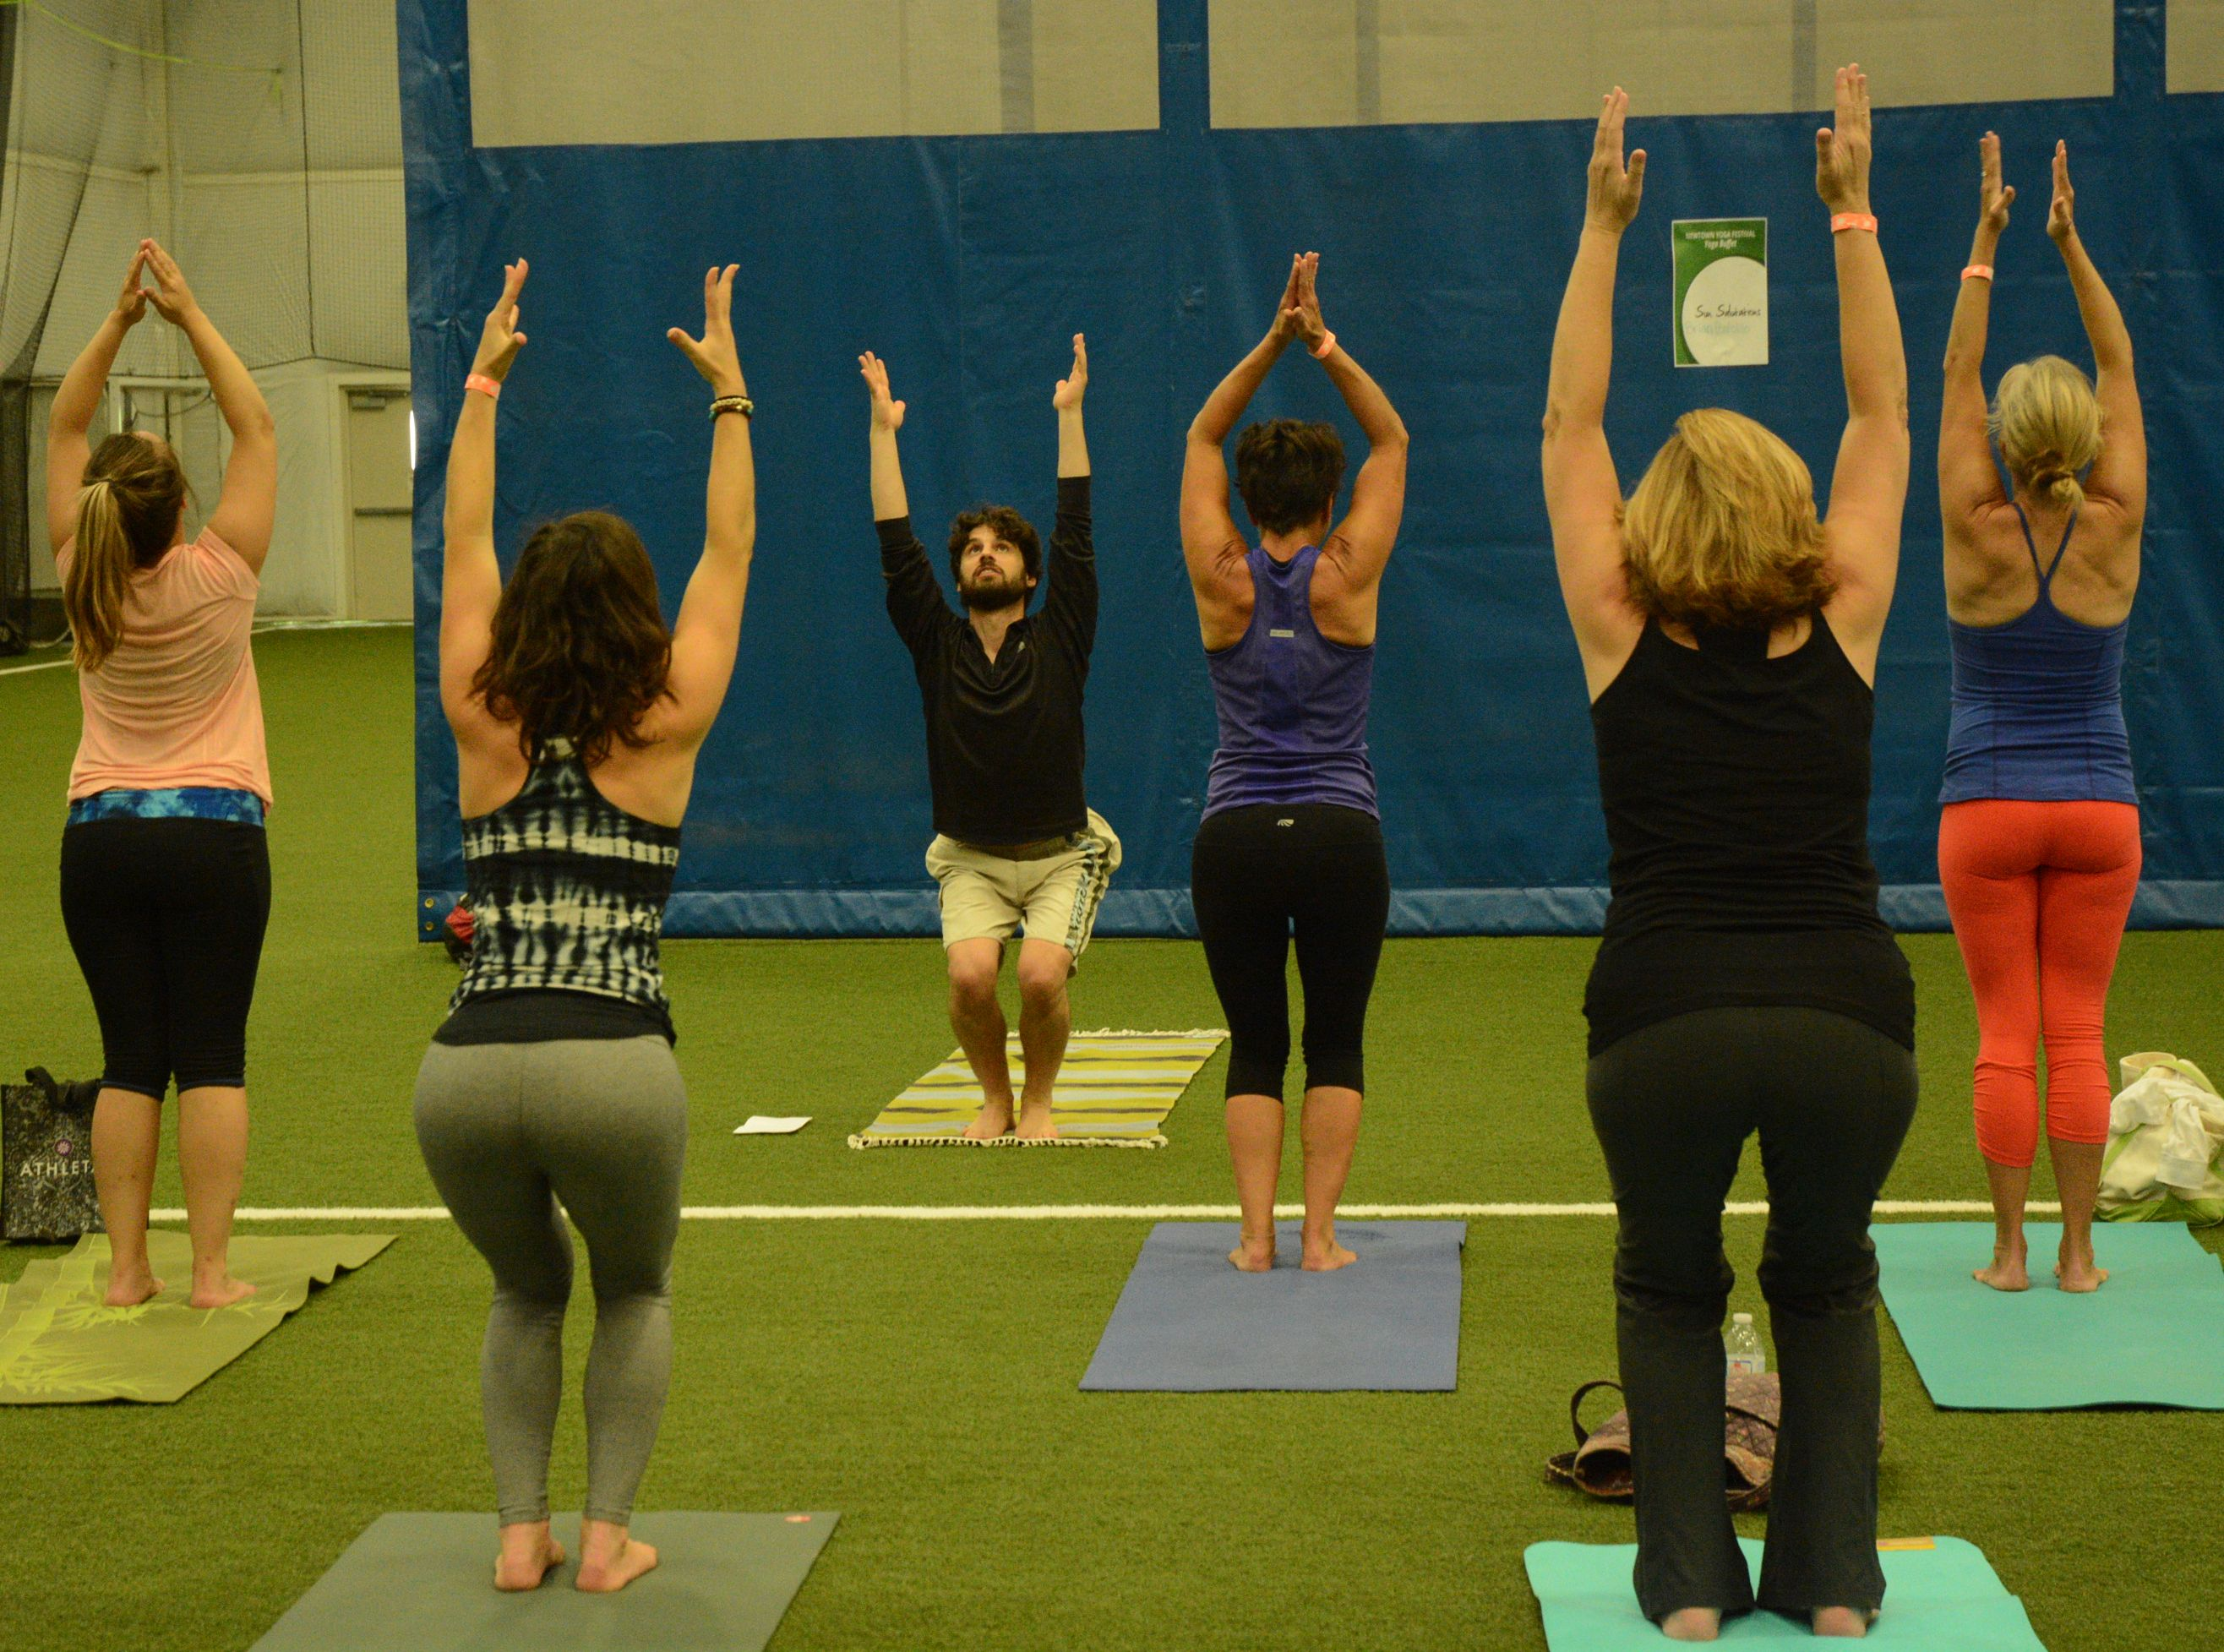 Yoga Festival Attracts 150 Attendees For Mind Body Discipline The